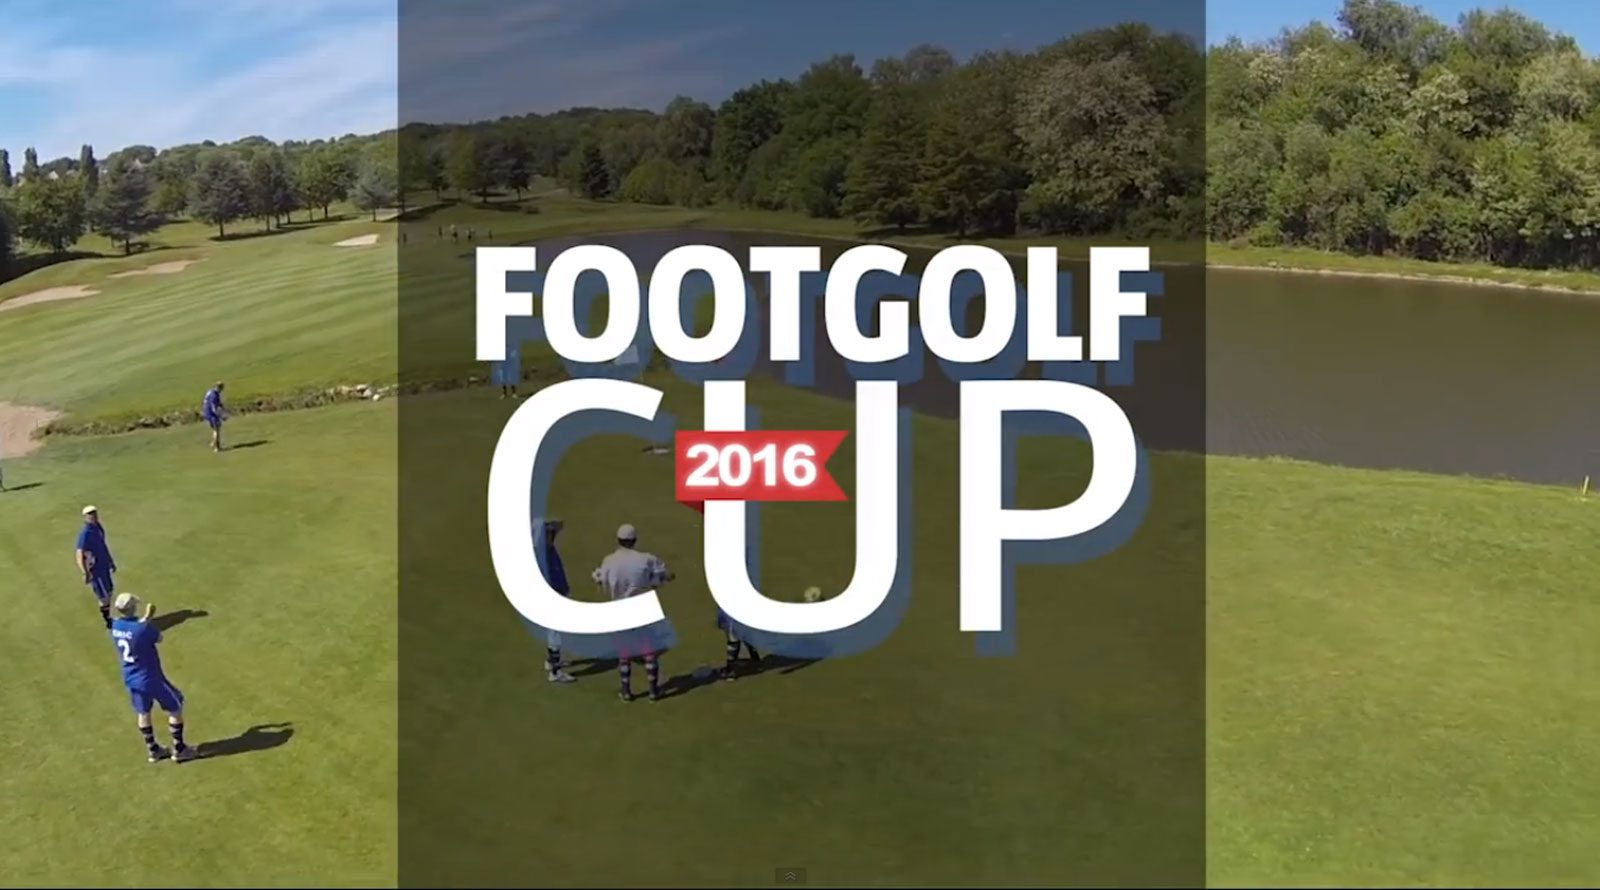 Marly : la « Footgolf cup 2016 » au golf de la Grange aux Ormes